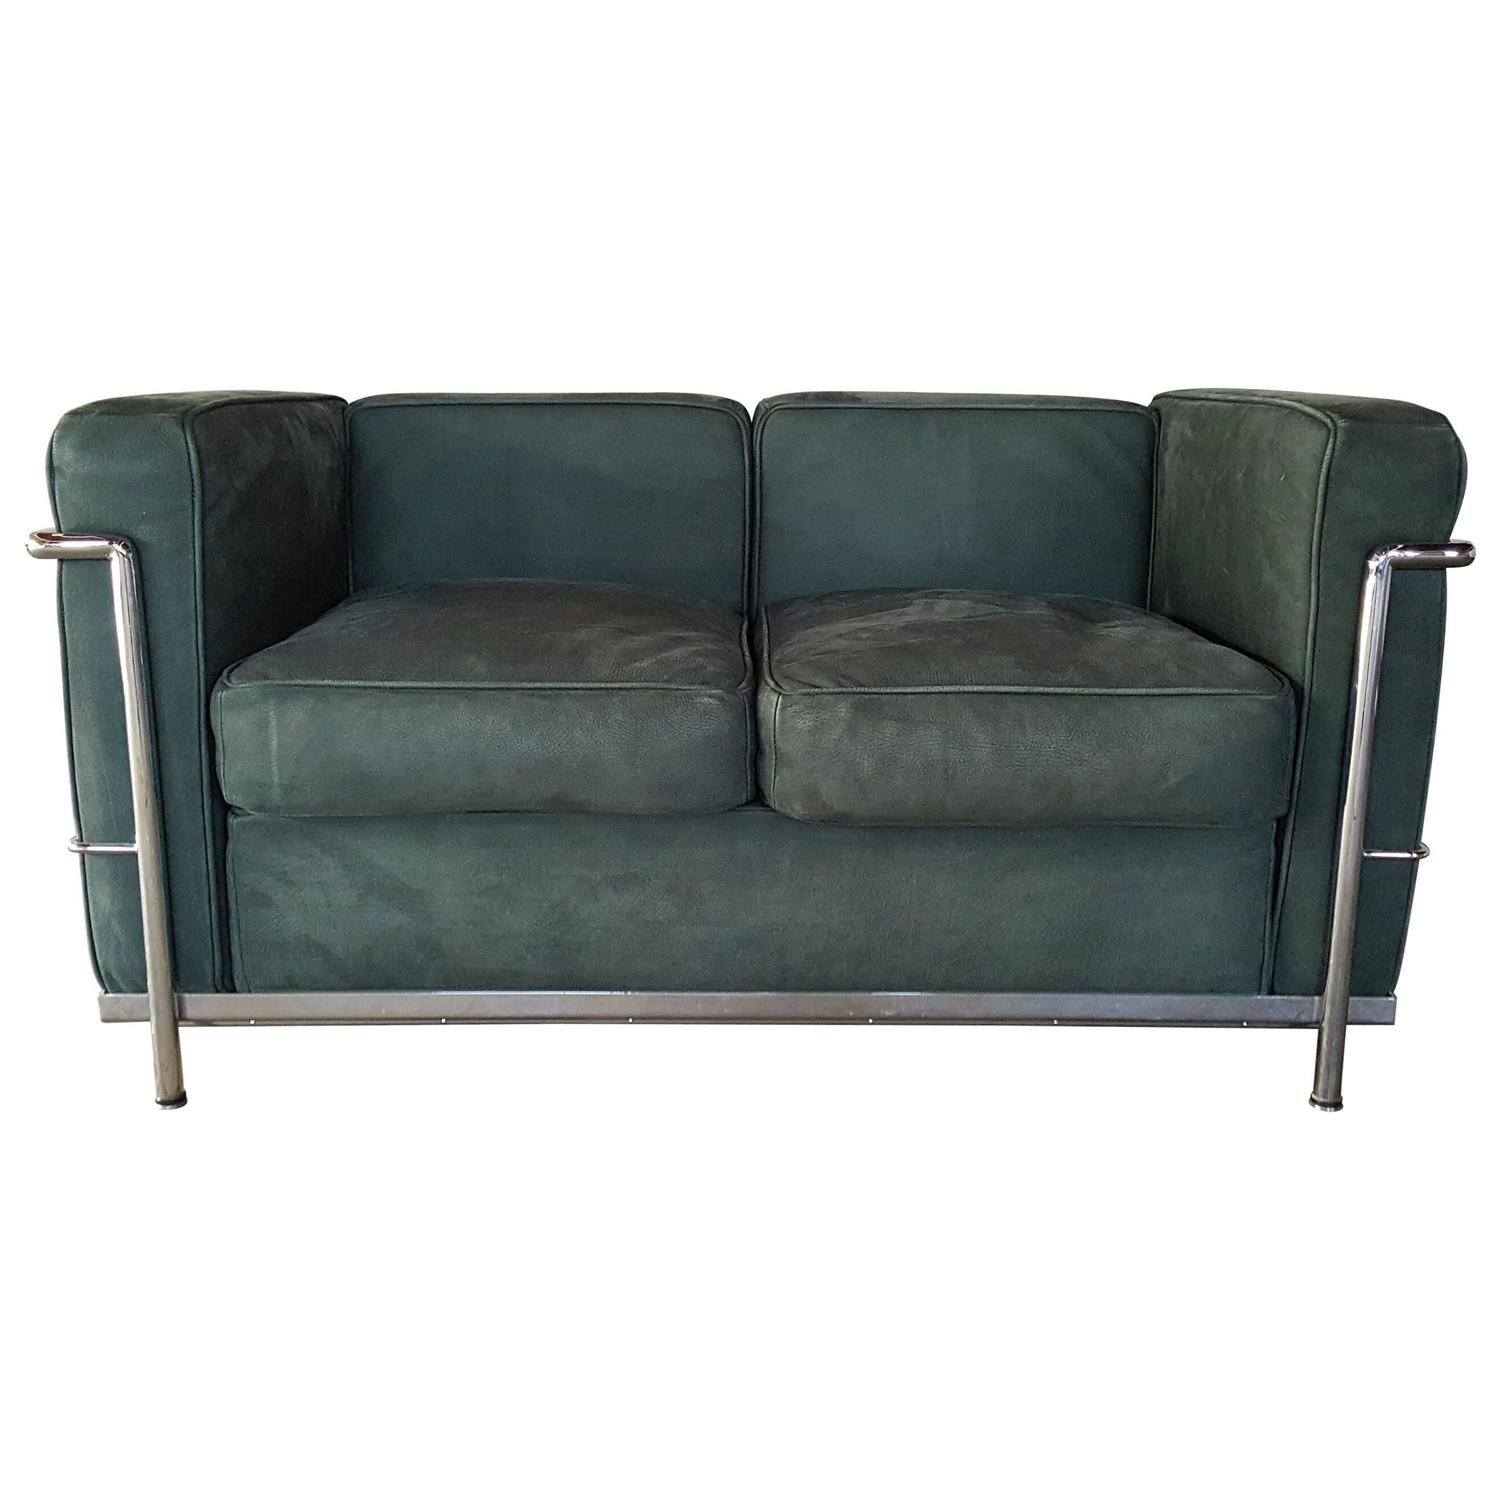 Le corbusier two seat sofa loveseat green suede and for Le corbusier sofa